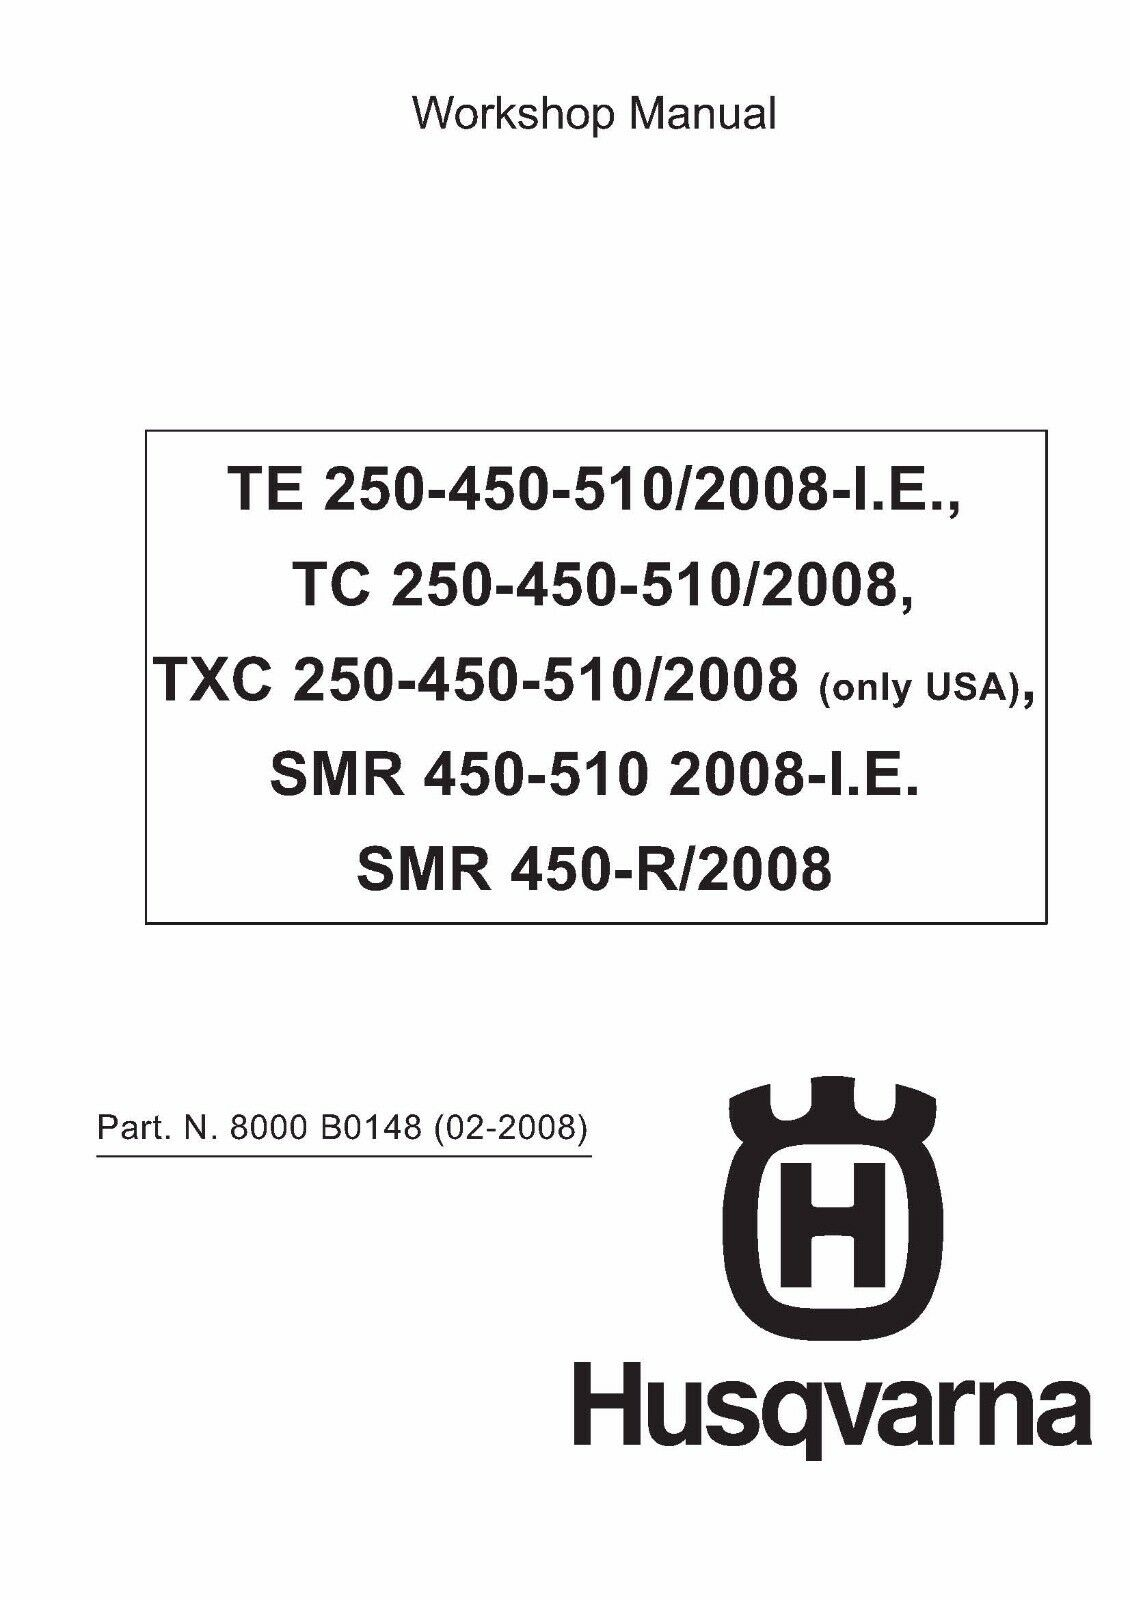 Husqvarna workshop service manual 2008 TC 250, TC 450 & TC 510 1 of 12Only  1 available ...